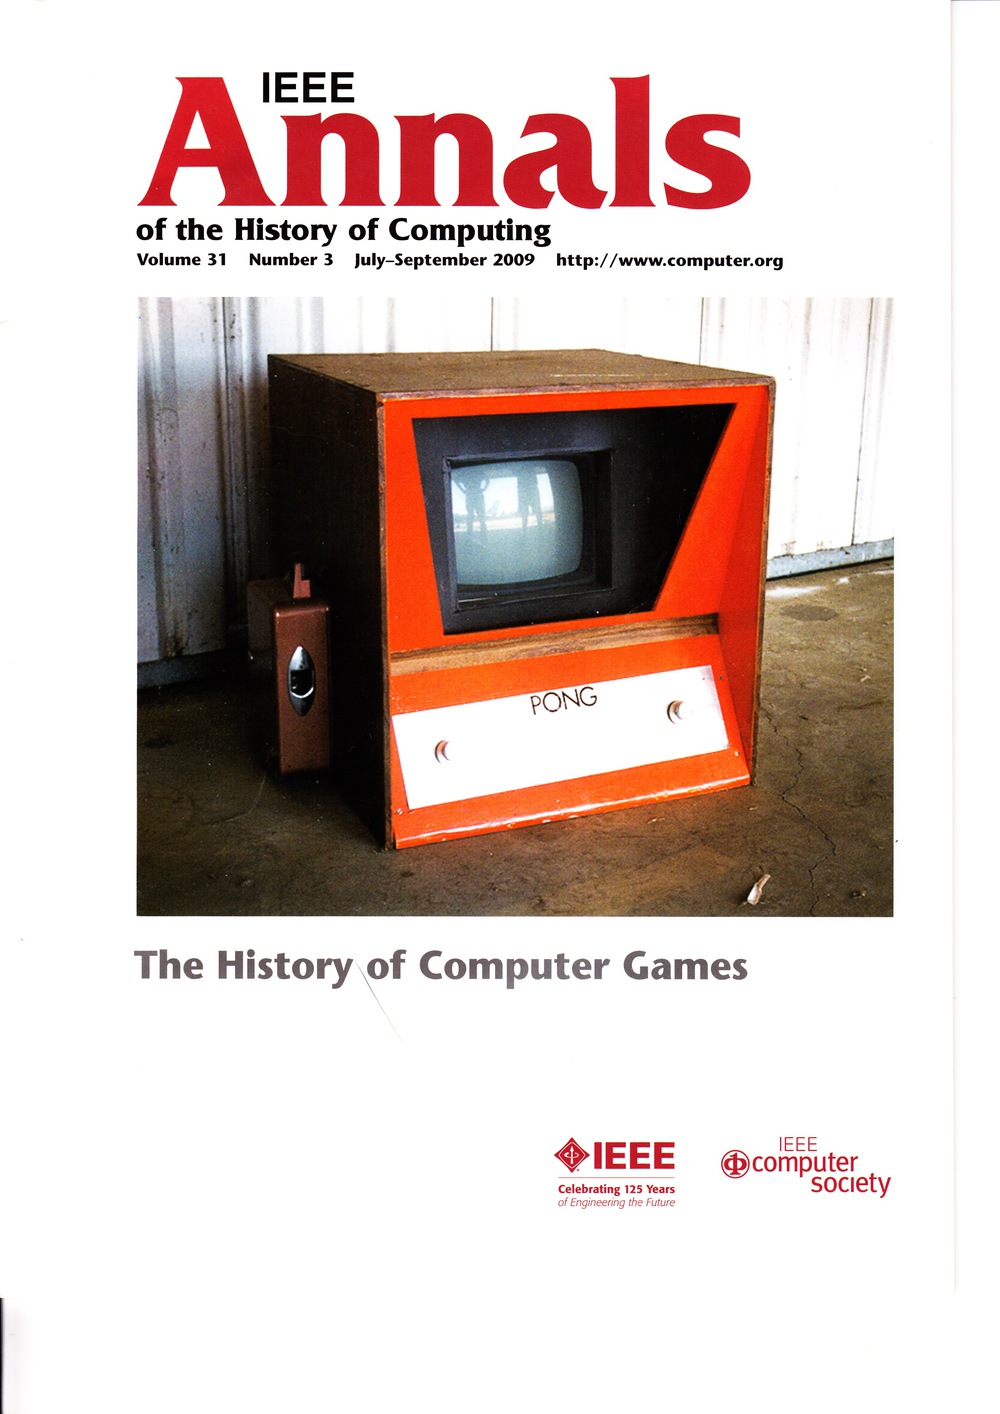 Scan of Document: IEEE Annals of the History of Computing - July-September 2009